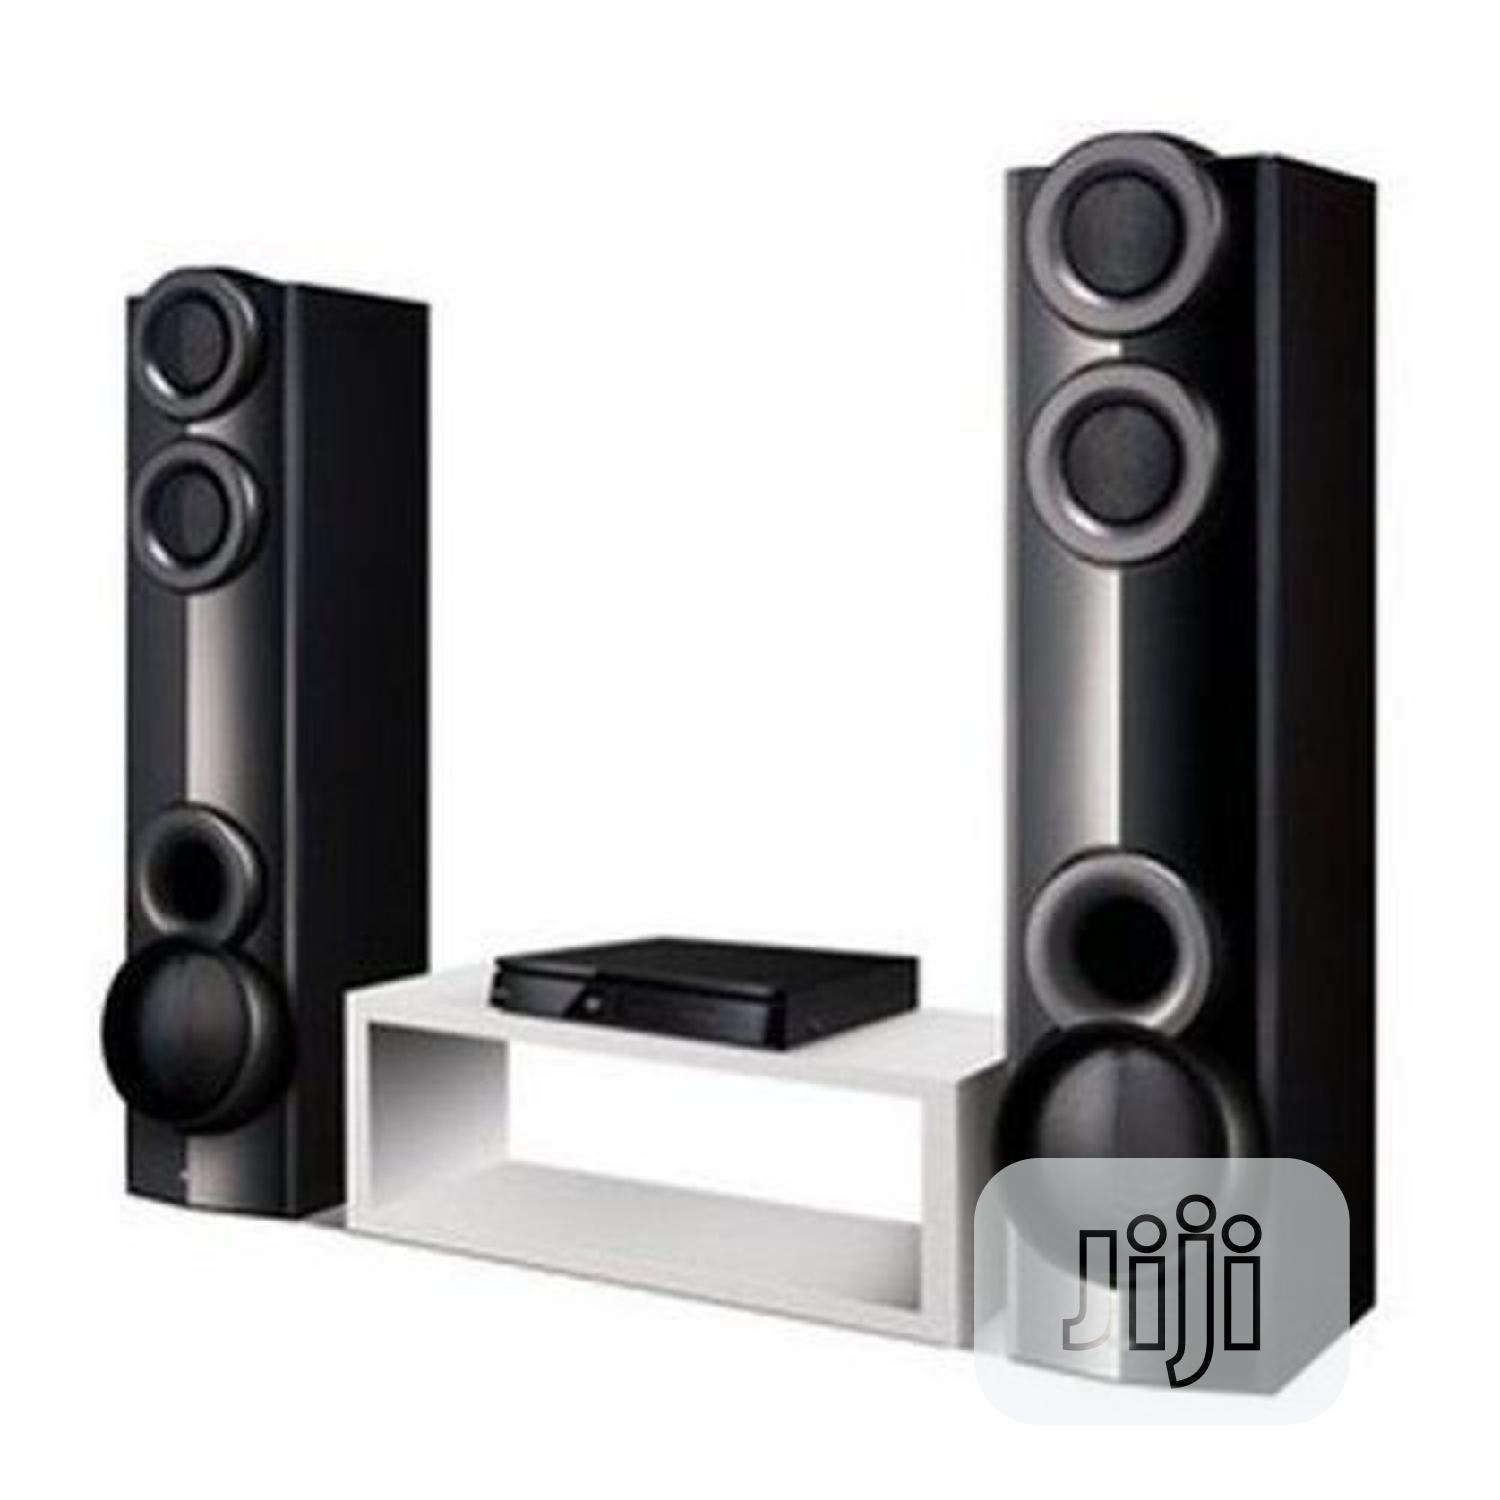 AUD 675 LHD 5.1 Ch. Bluetooth DVD Body Guard Home Theatre System